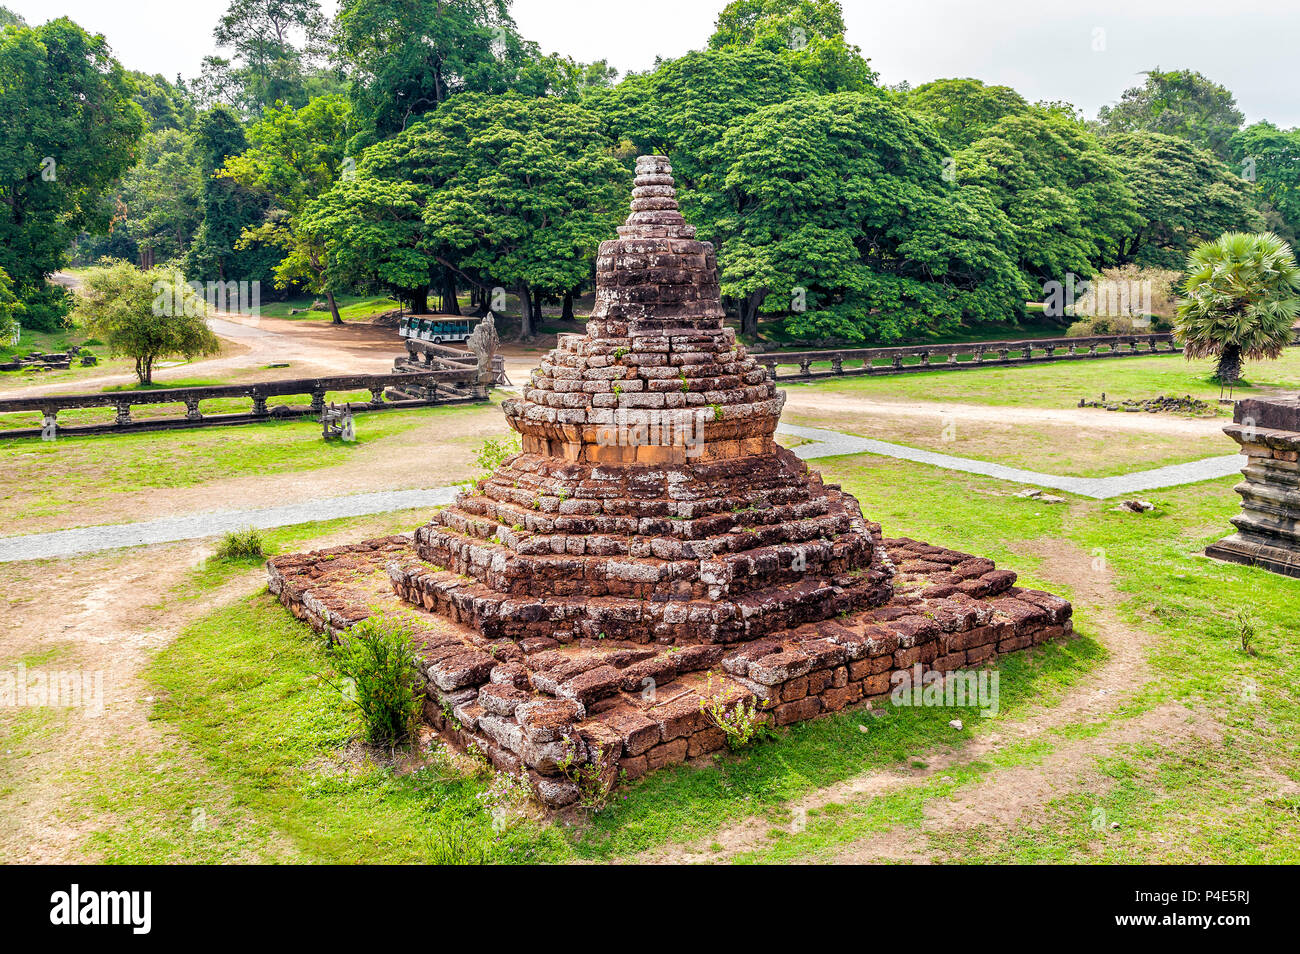 The temple complex of Angkor Wat in Cambodia. - Stock Image